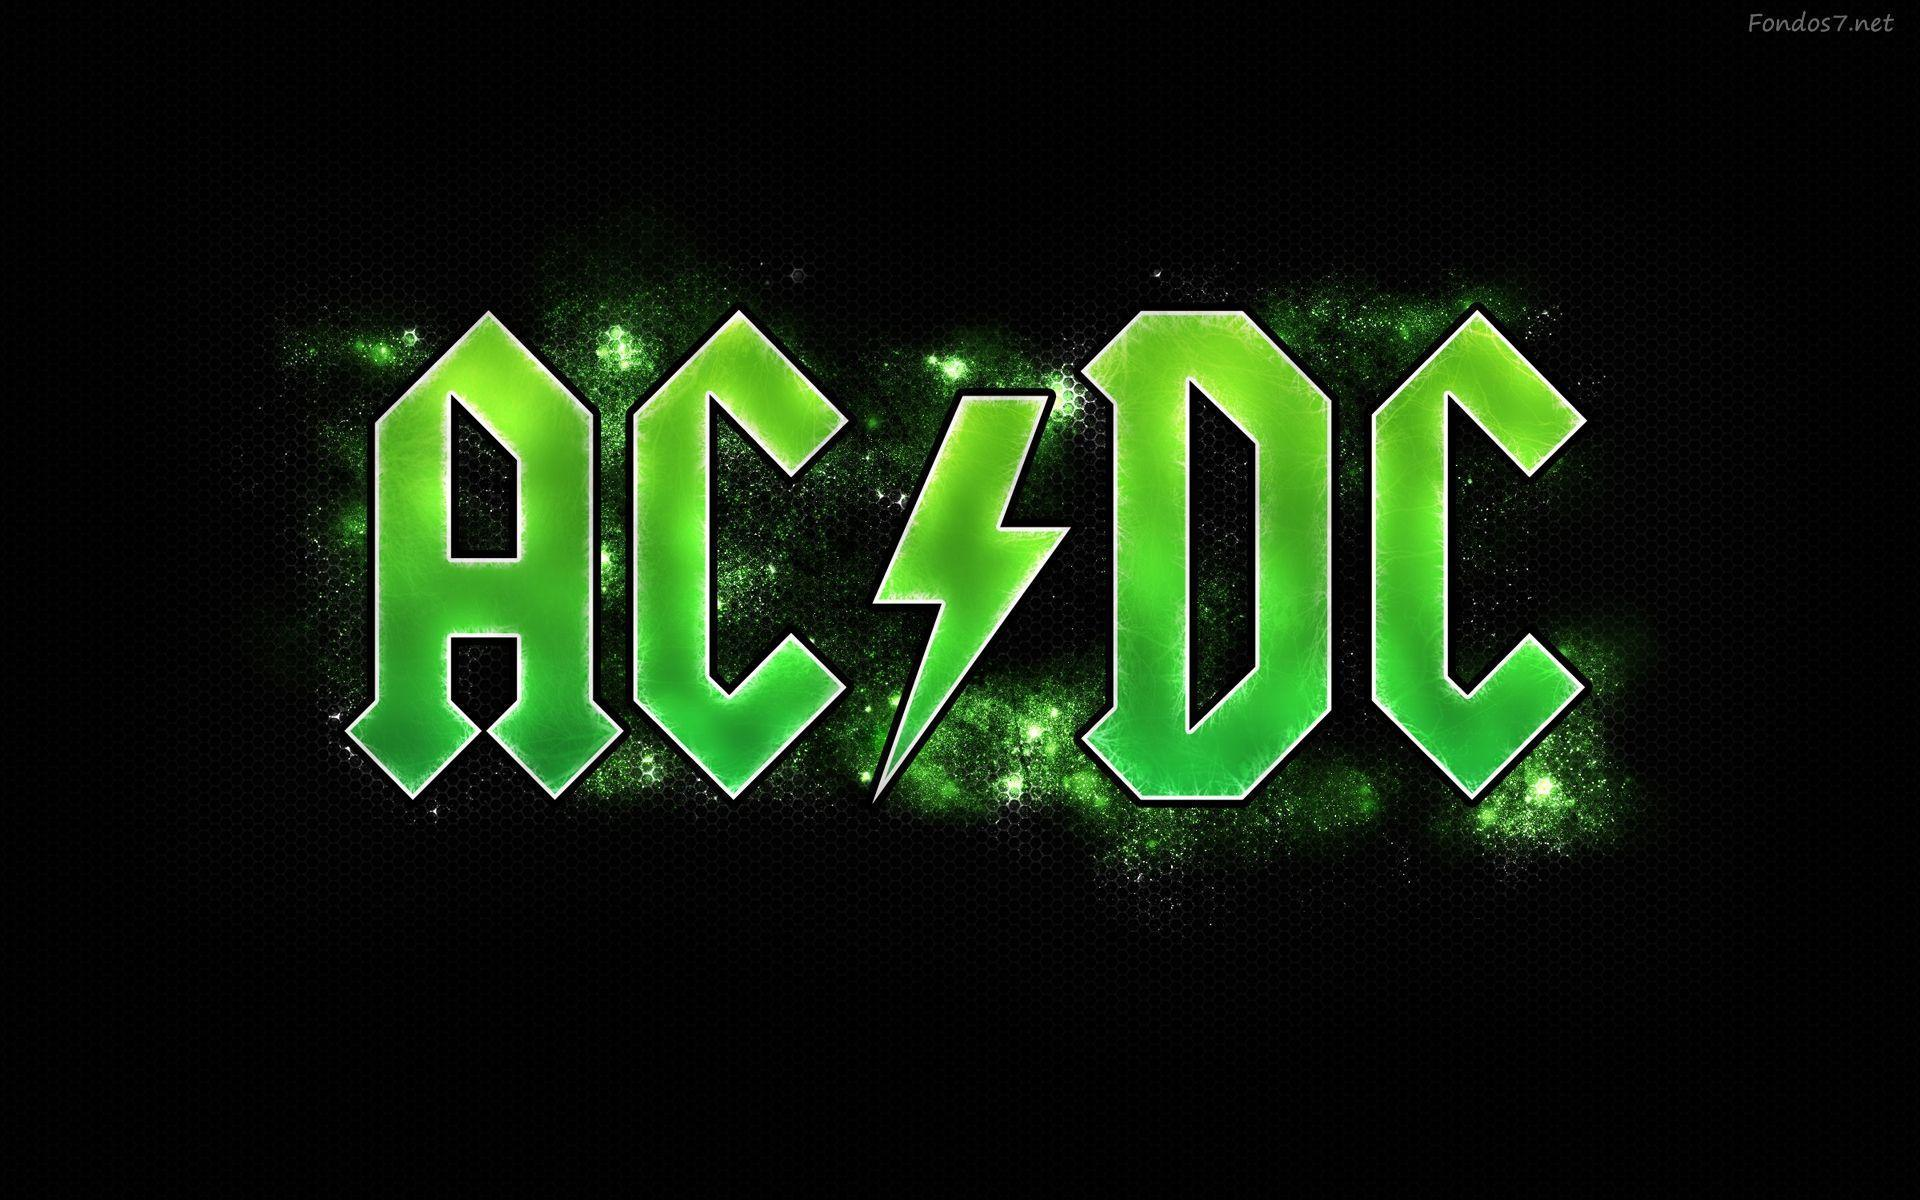 AC/DC logo wallpaper -011 - All Wallpapers - http://www ...